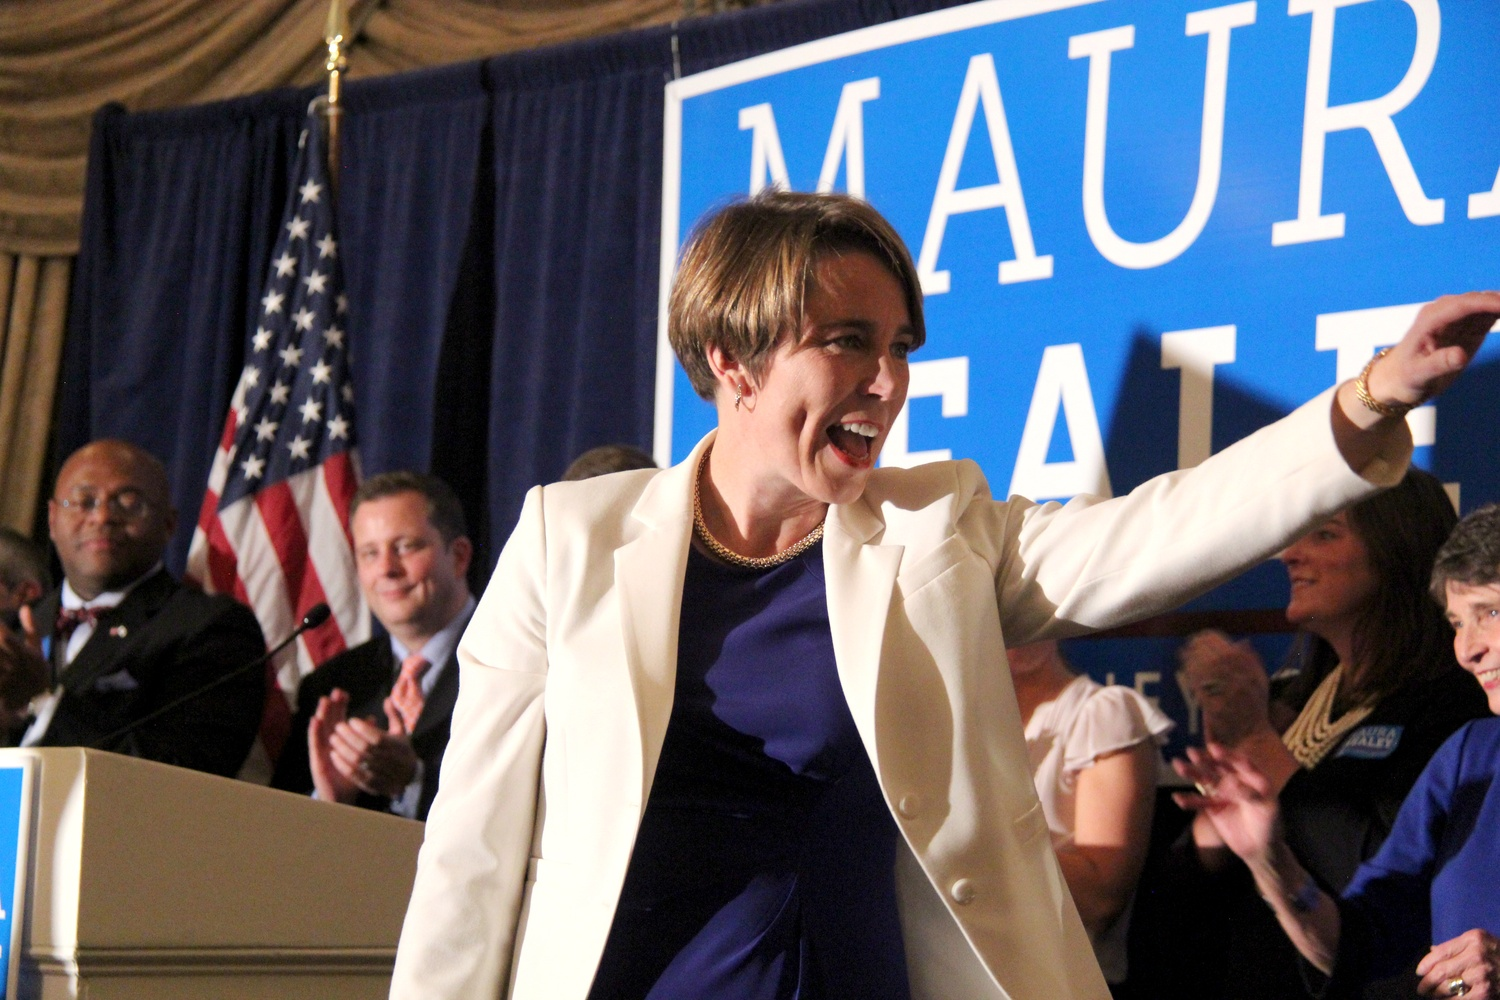 Maura Healey '92, the newly elected Attorney General, celebrates her election at the Oval Room in the Fairmont Copley Plaza on Wednesday night.